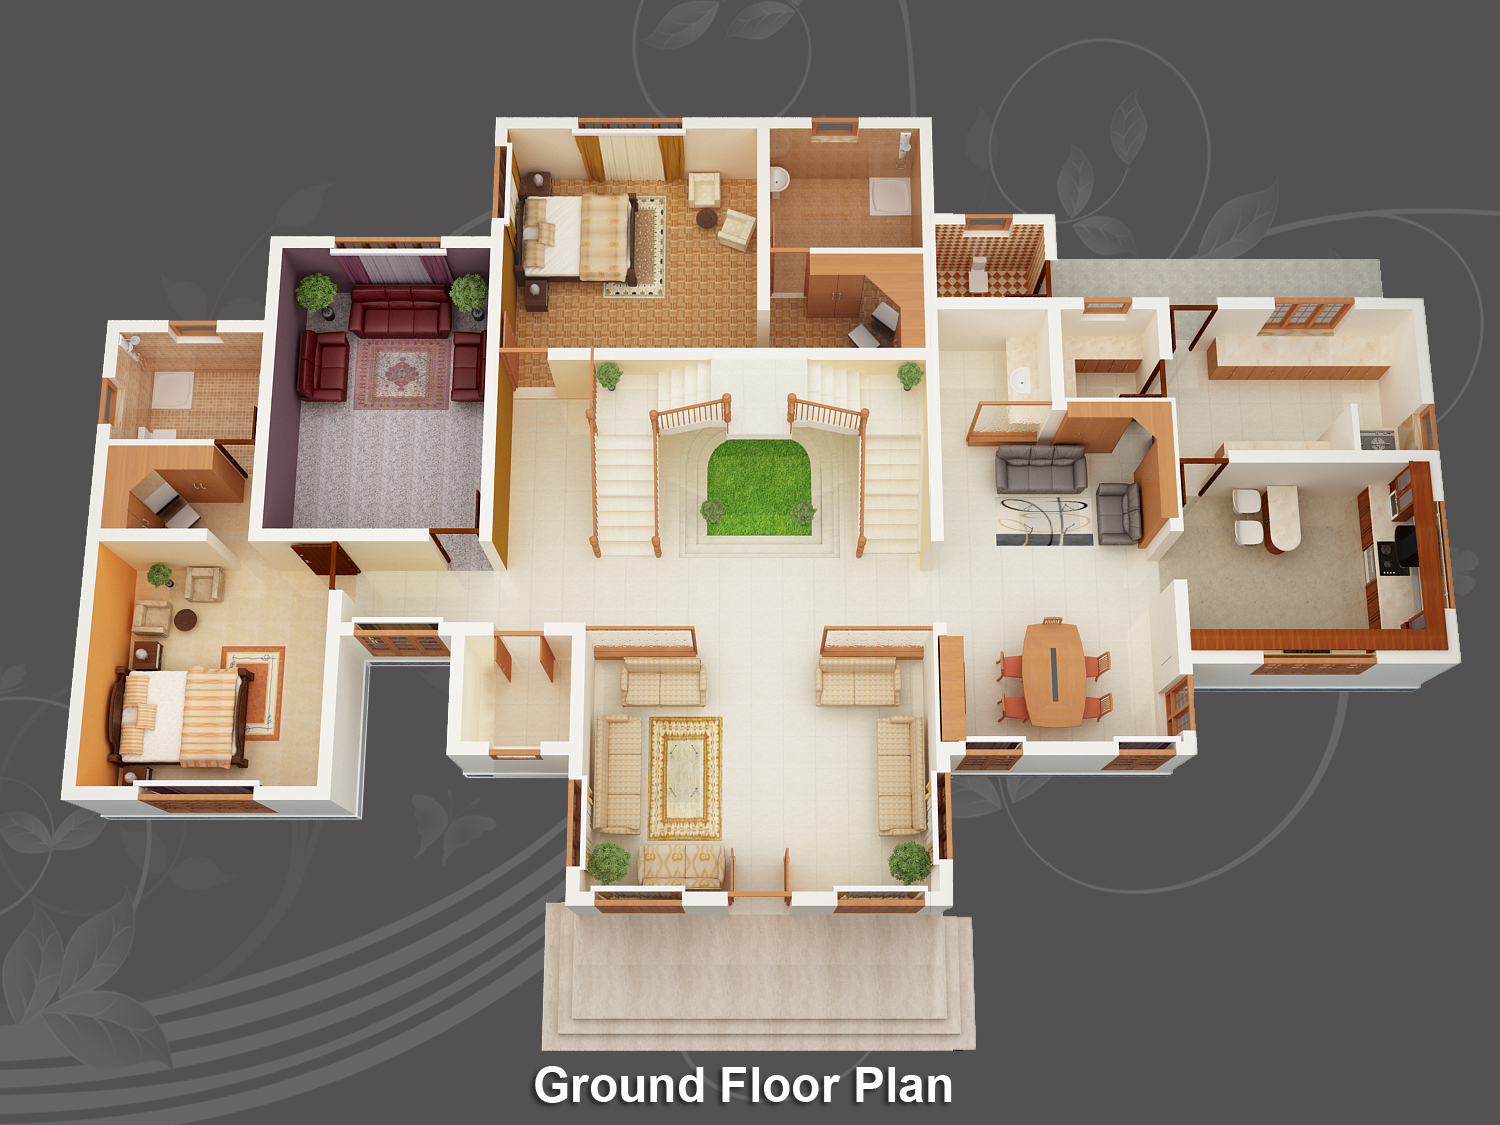 Evens construction pvt ltd 3d house plan 20 05 2011 House plan design online